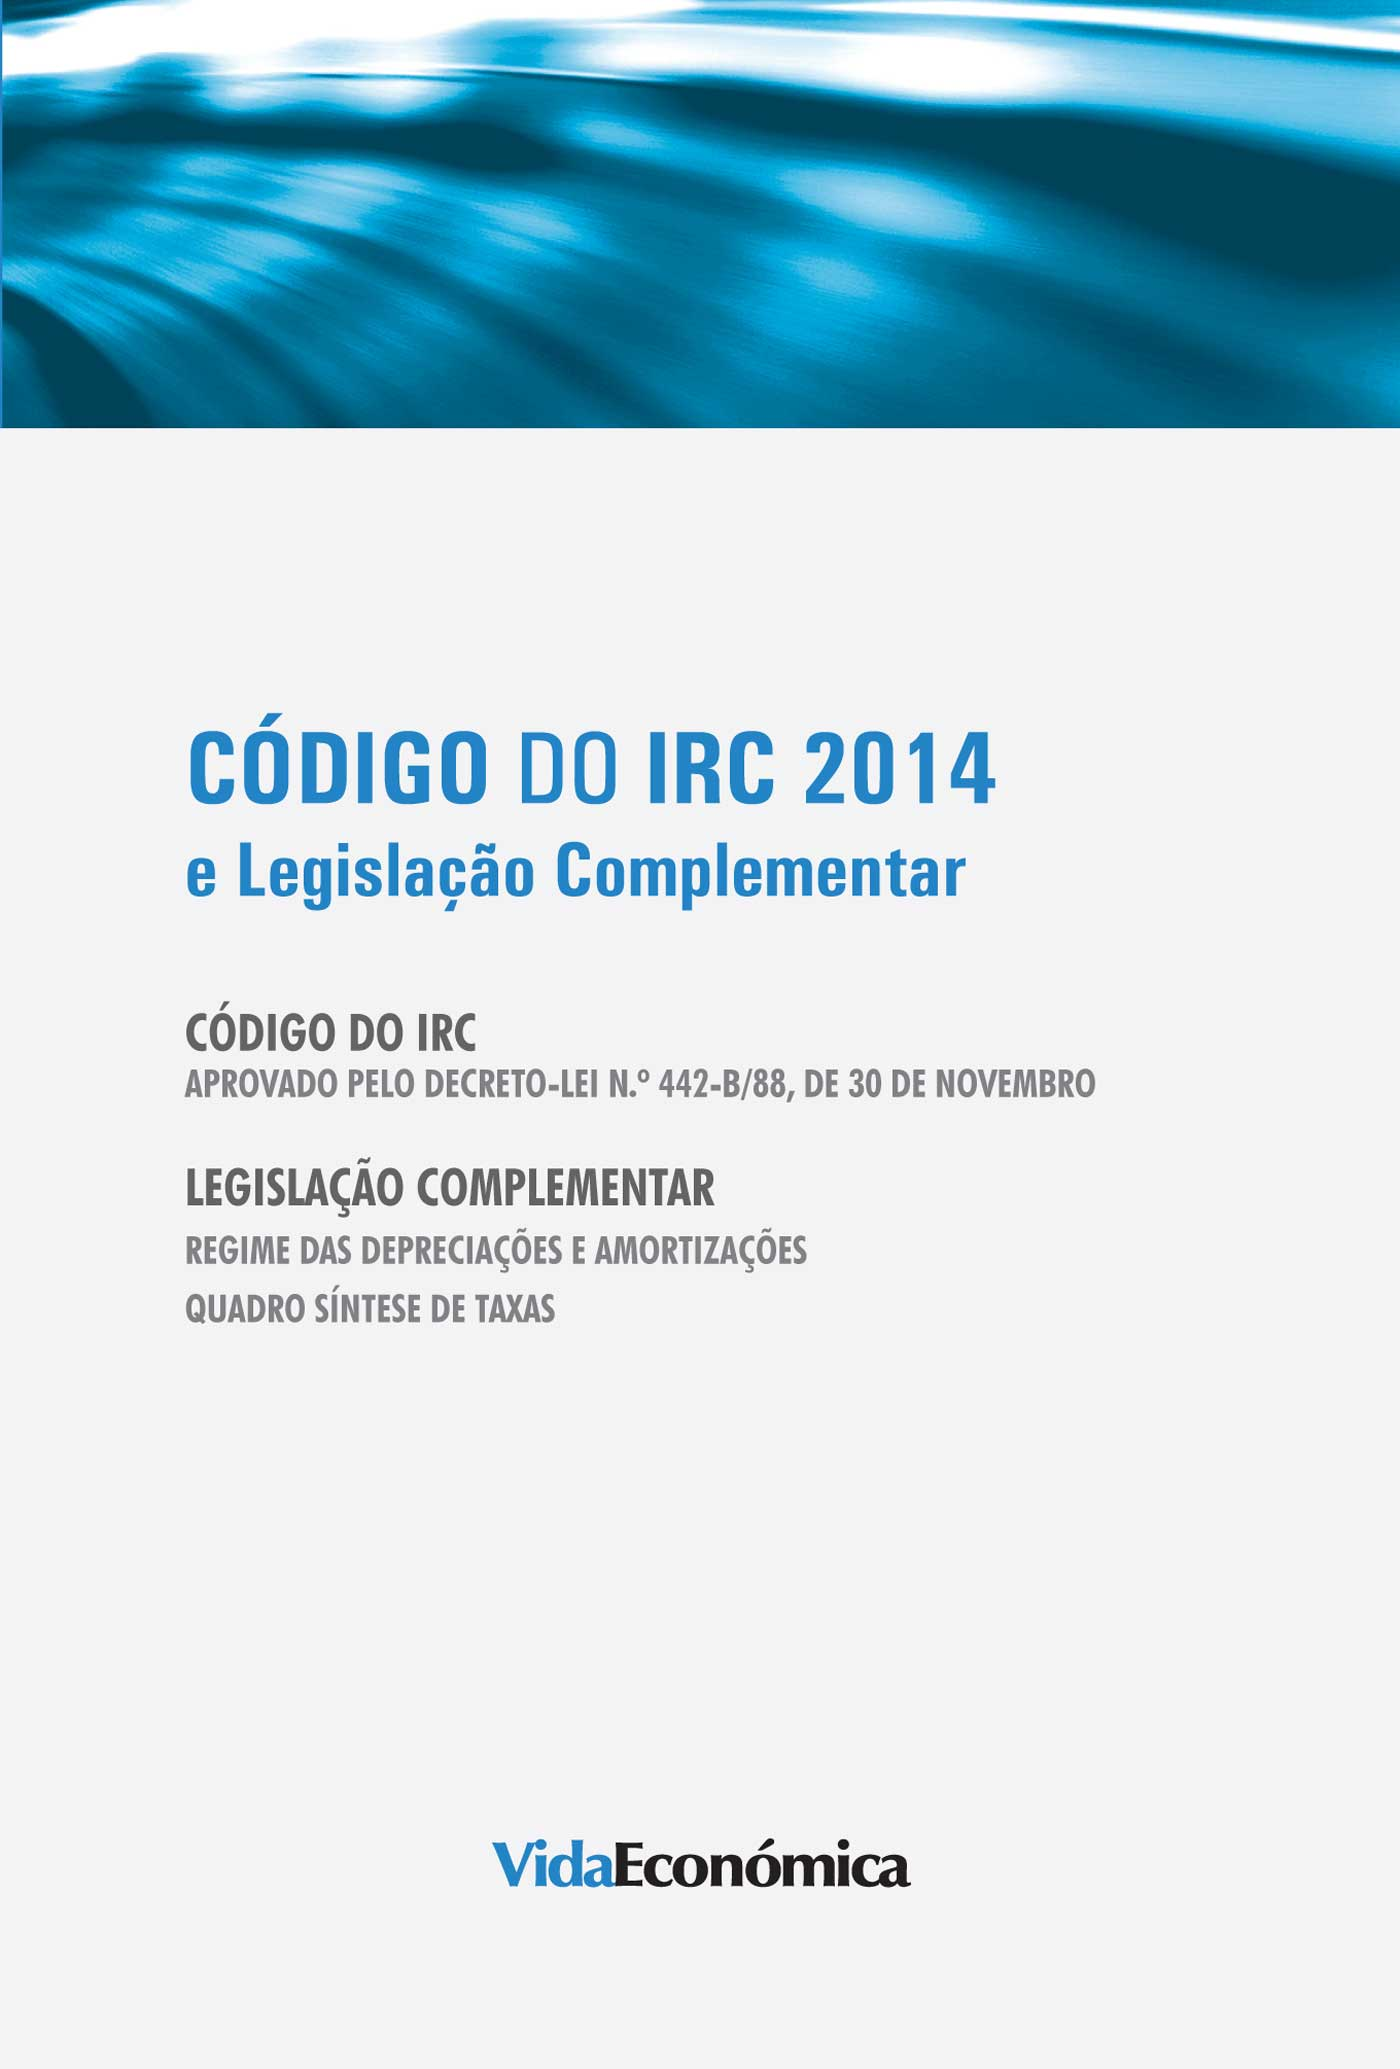 Código do IRC 2014